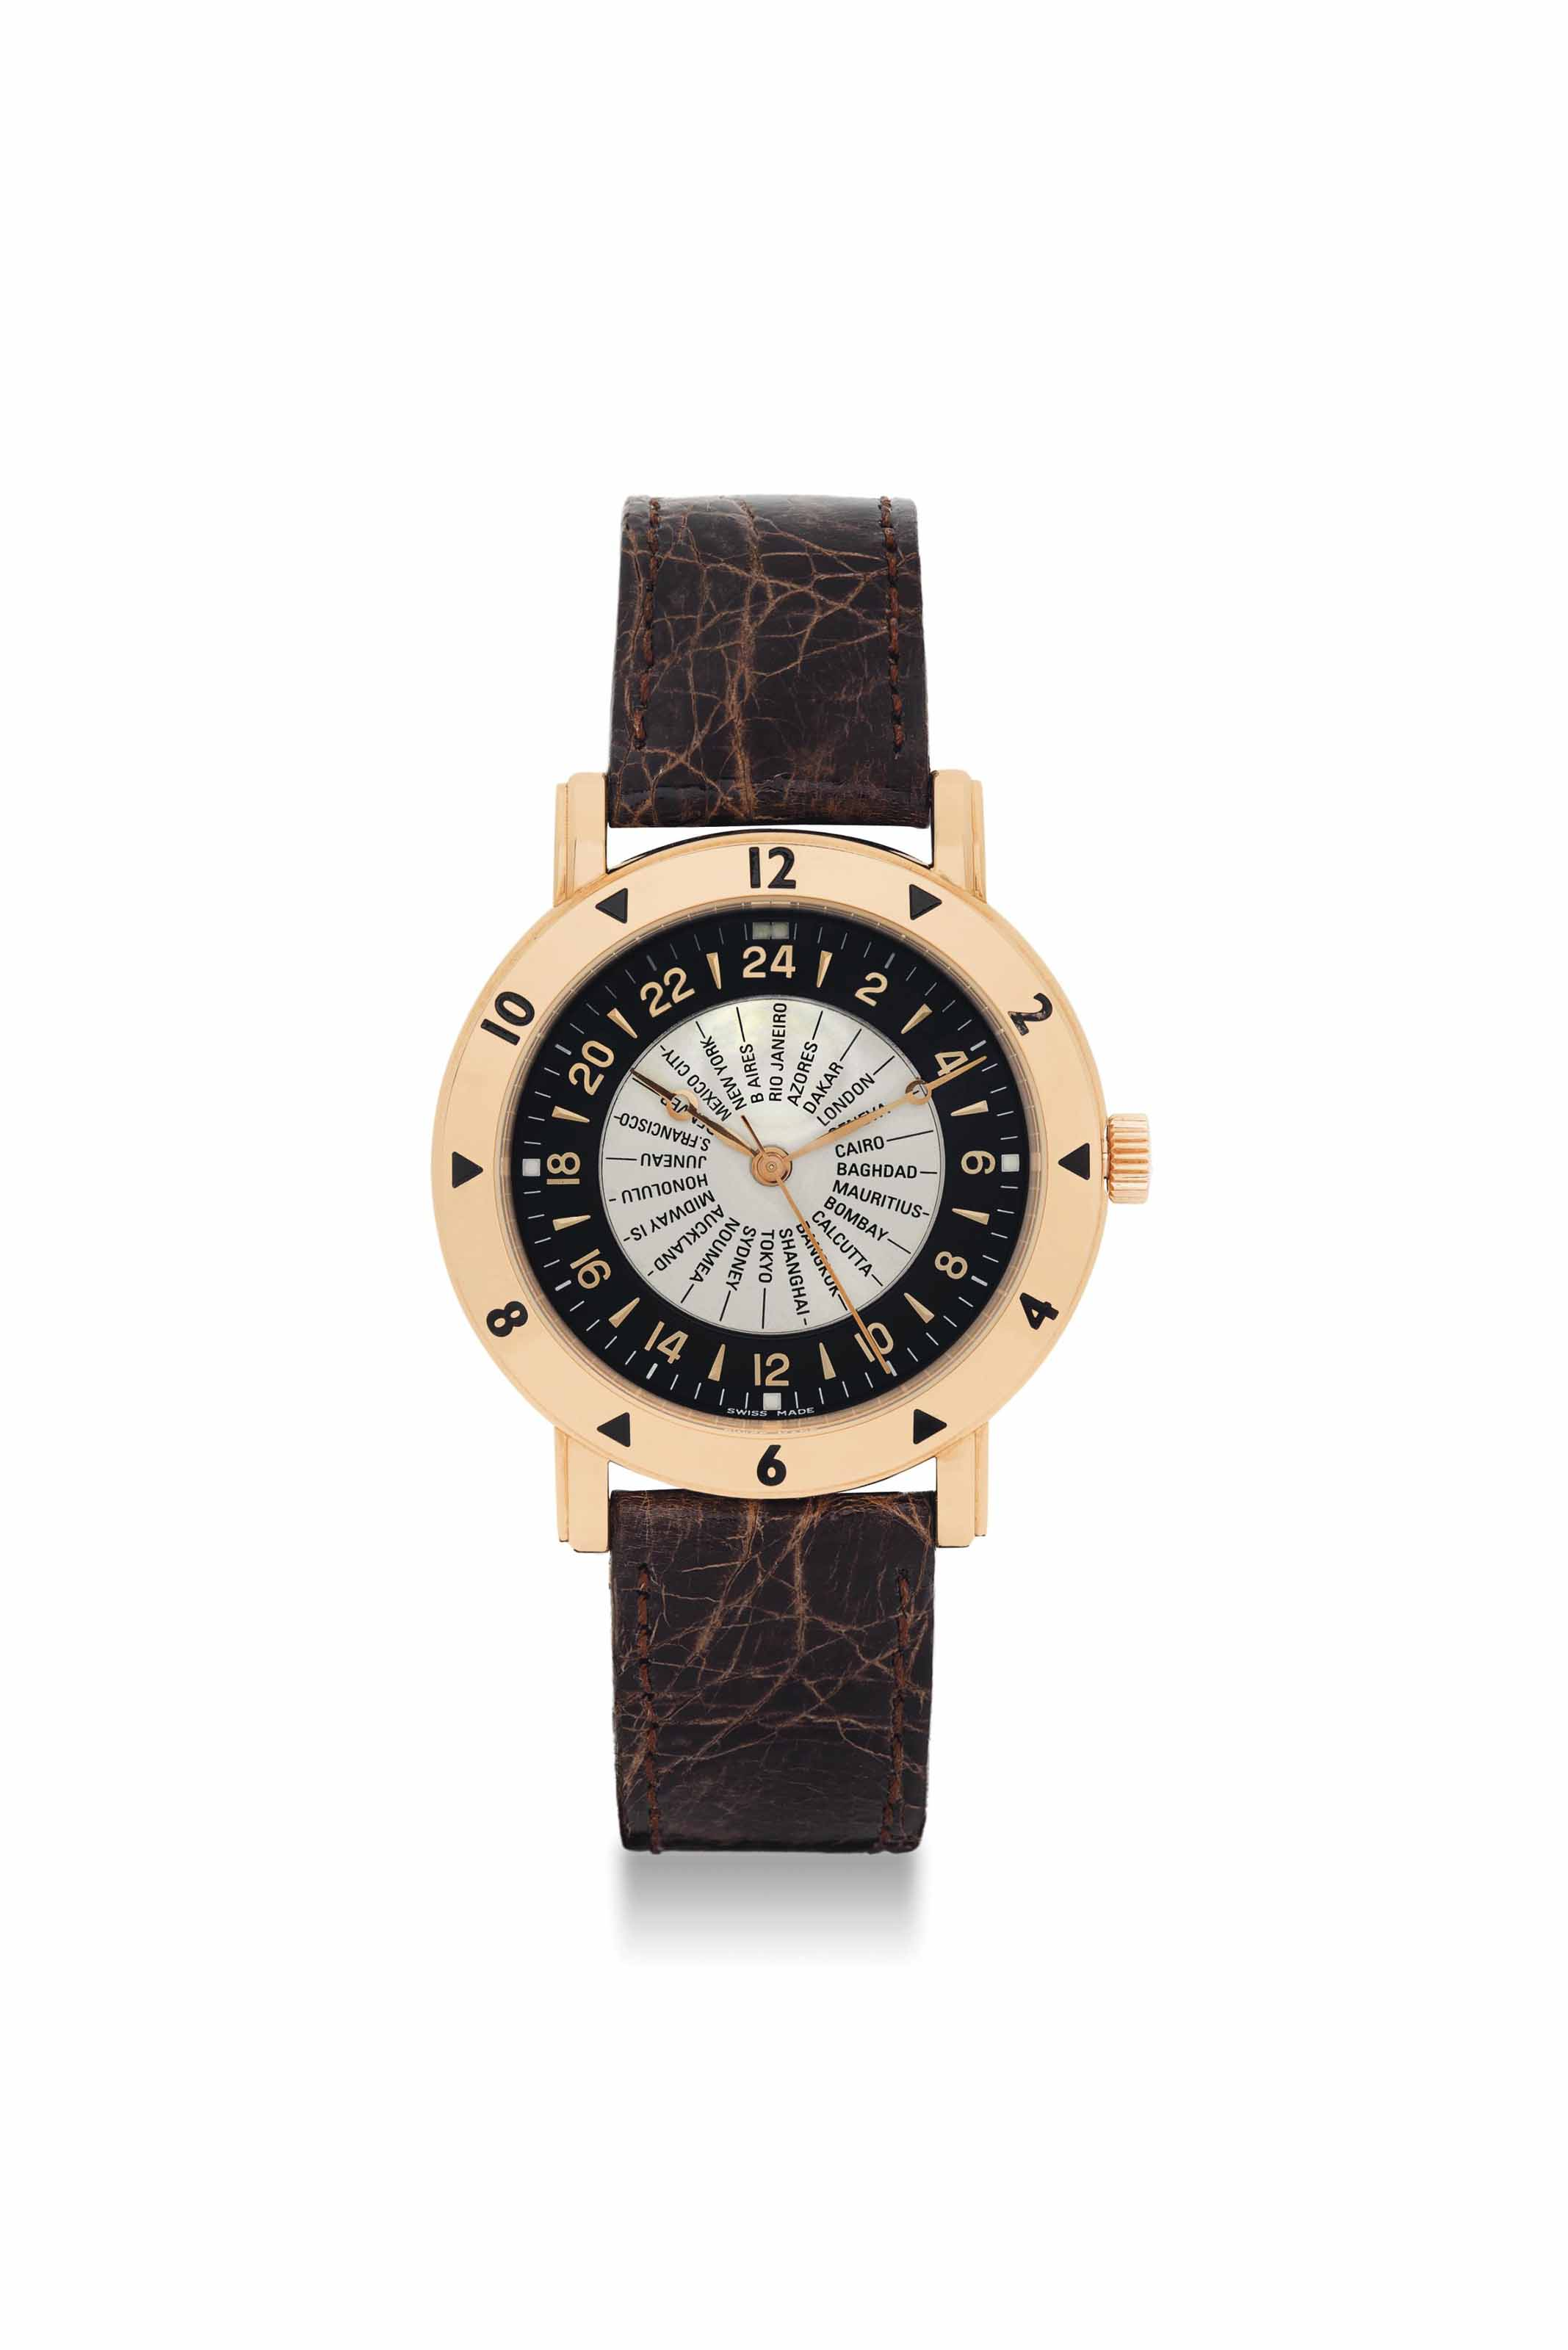 WALDAN INTERNATIONAL. AN 18K PINK GOLD AUTOMATIC WORLD TIME WRISTWATCH WITH SWEEP CENTRE SECONDS